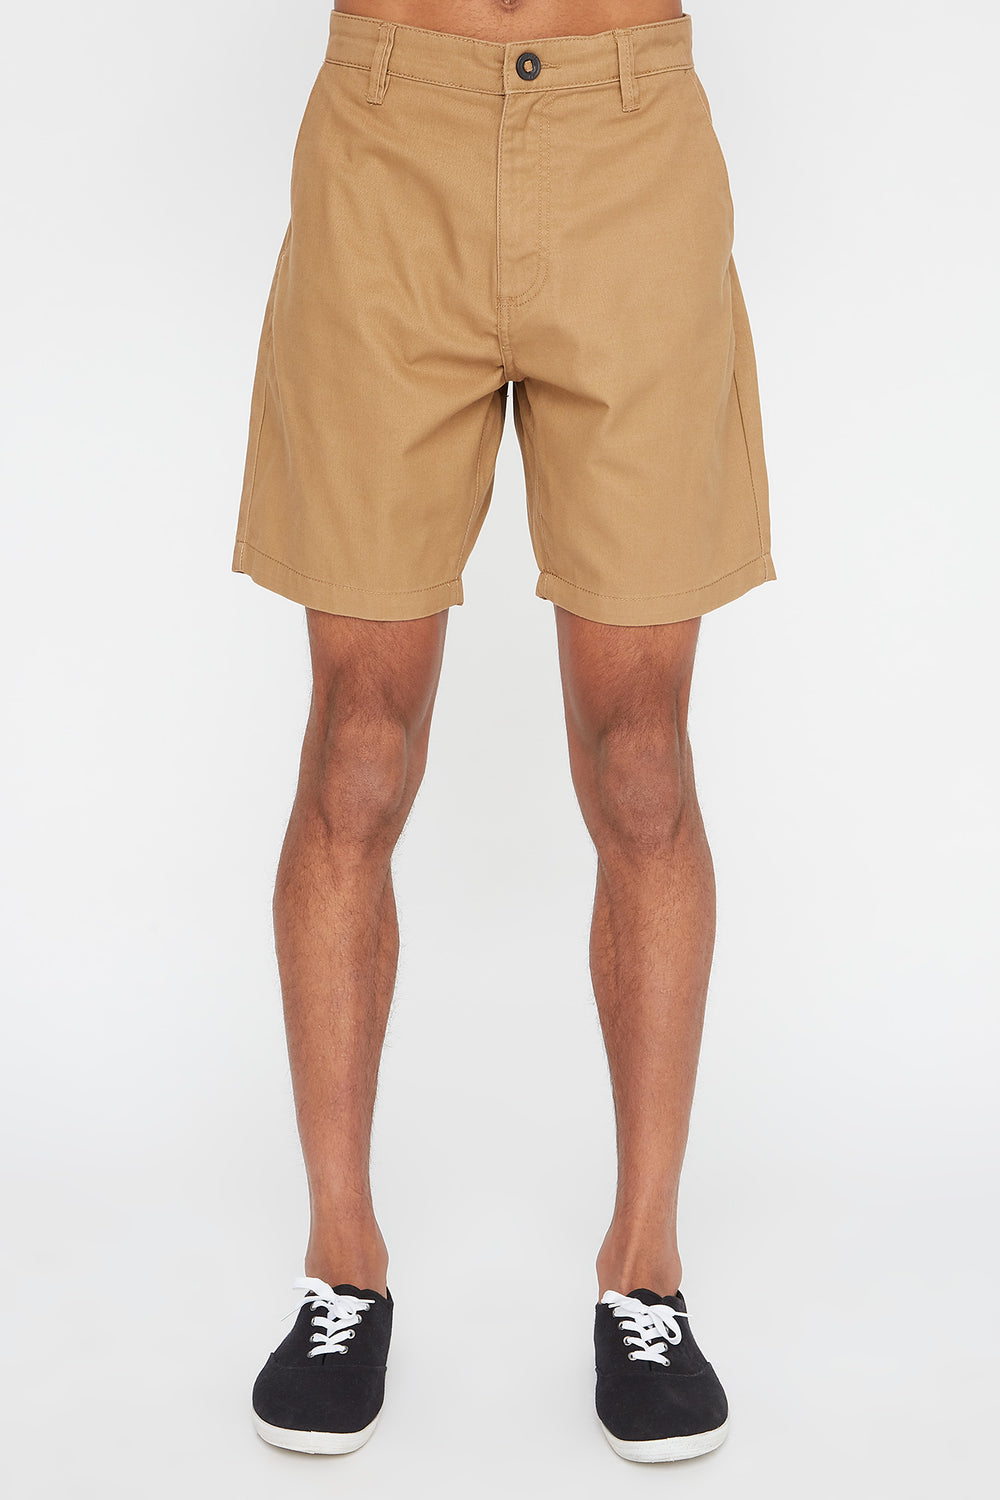 West49 Mens Slim Short Camel